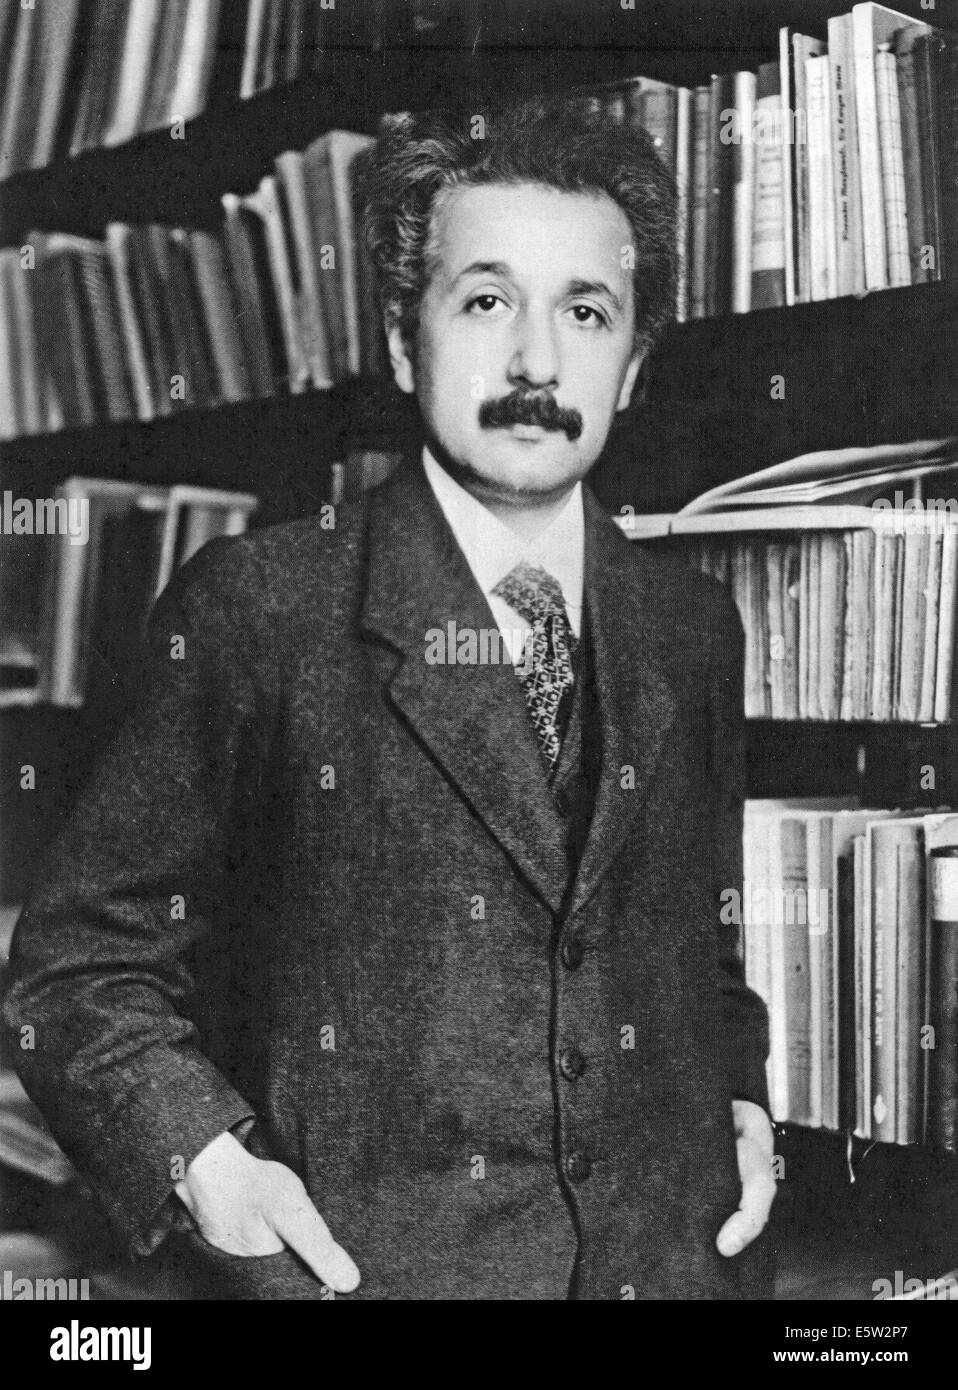 ALBERT EINSTEIN (1879-1955) German-born theoretical physicist in 1905 - Stock Image